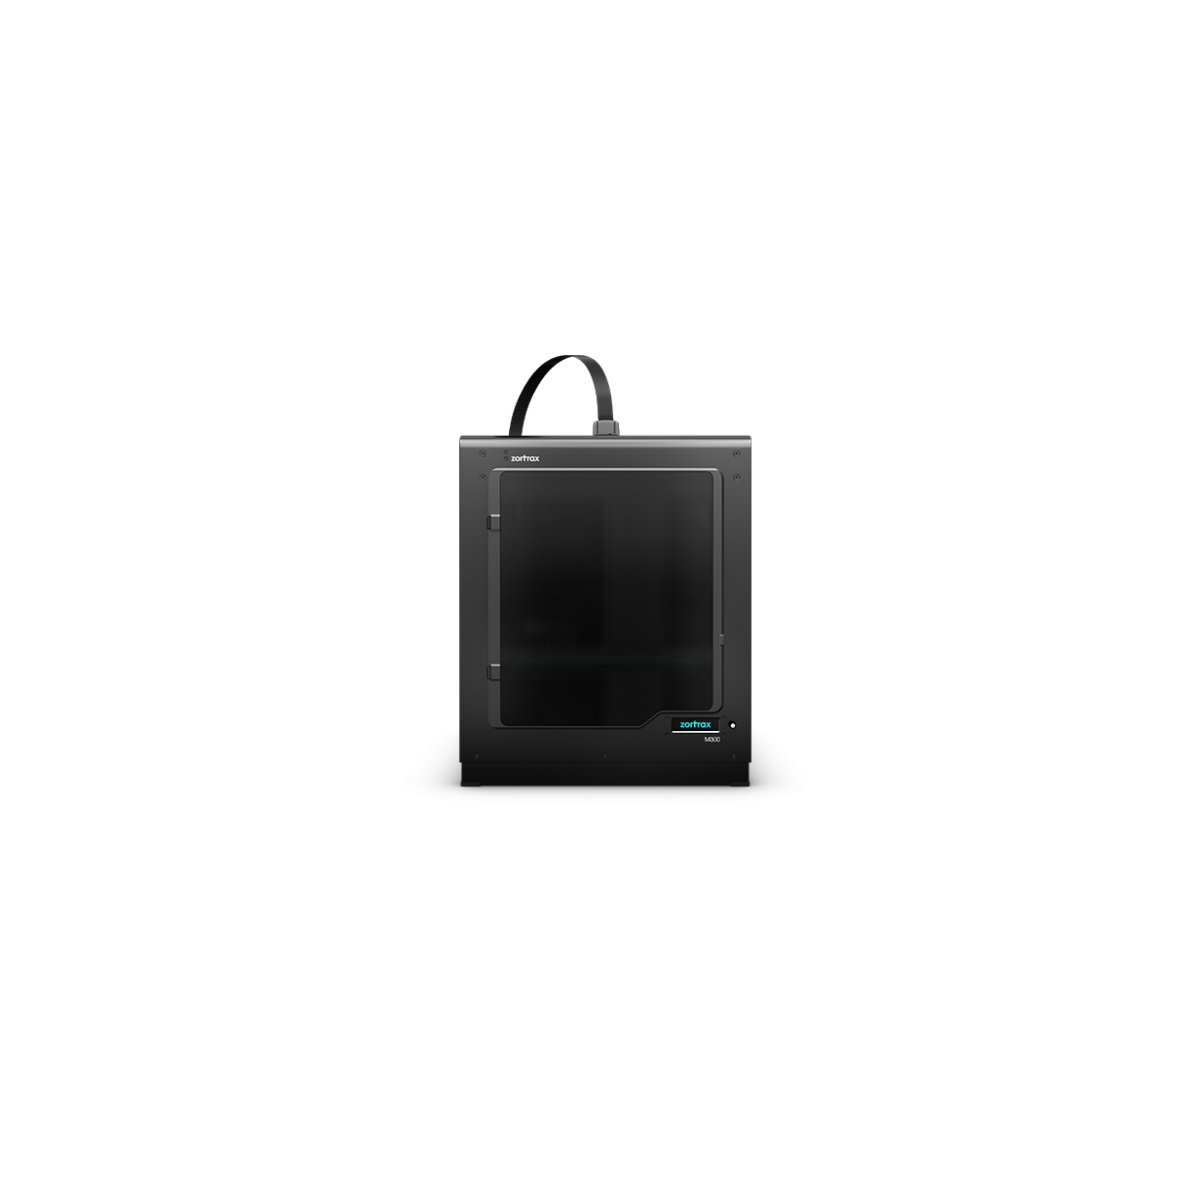 Zortrax M300 impresora 3d, ABS/z-petg, Negro: Amazon.es: Industria ...